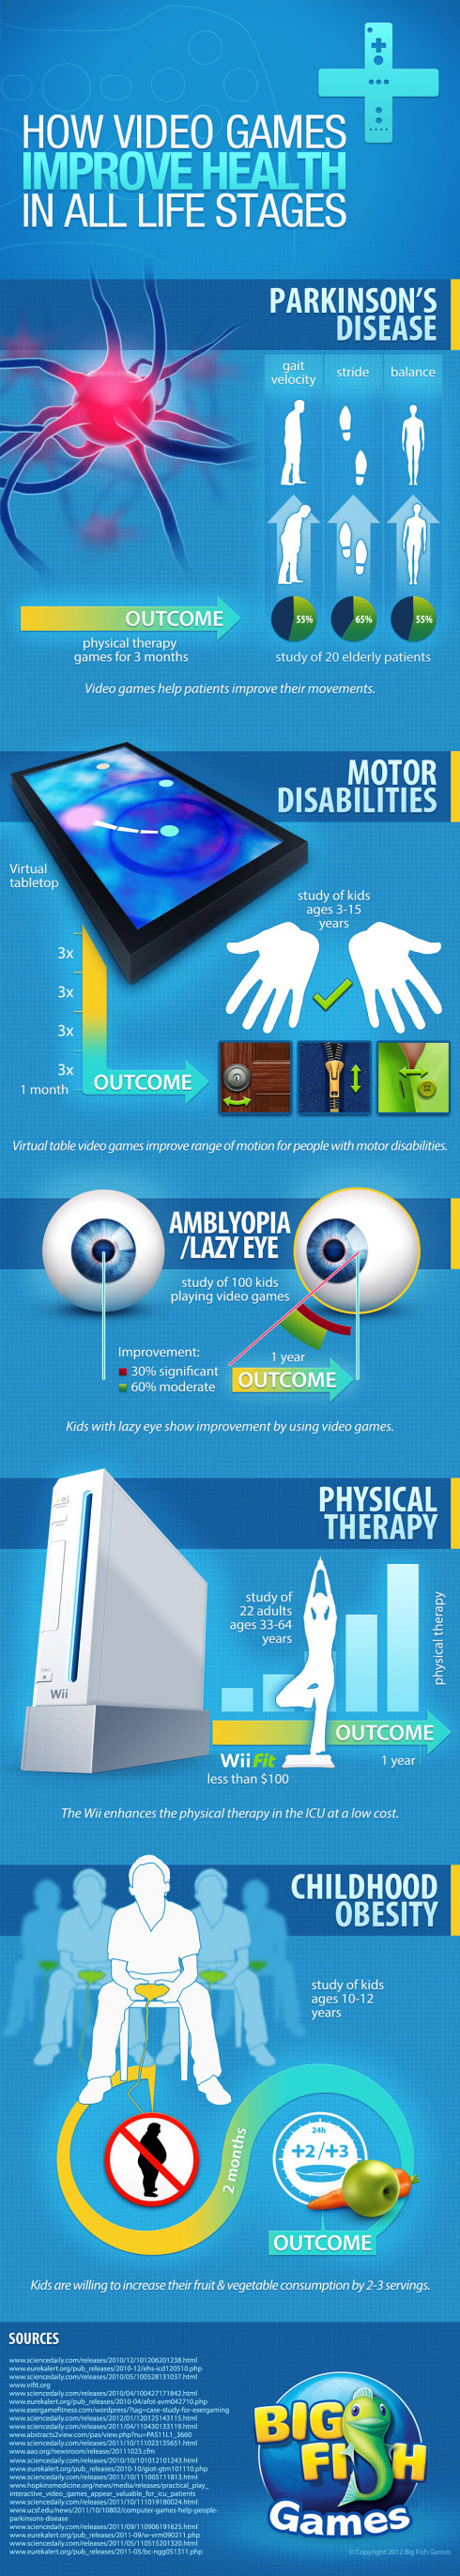 how-video-games-improve-health-infographic